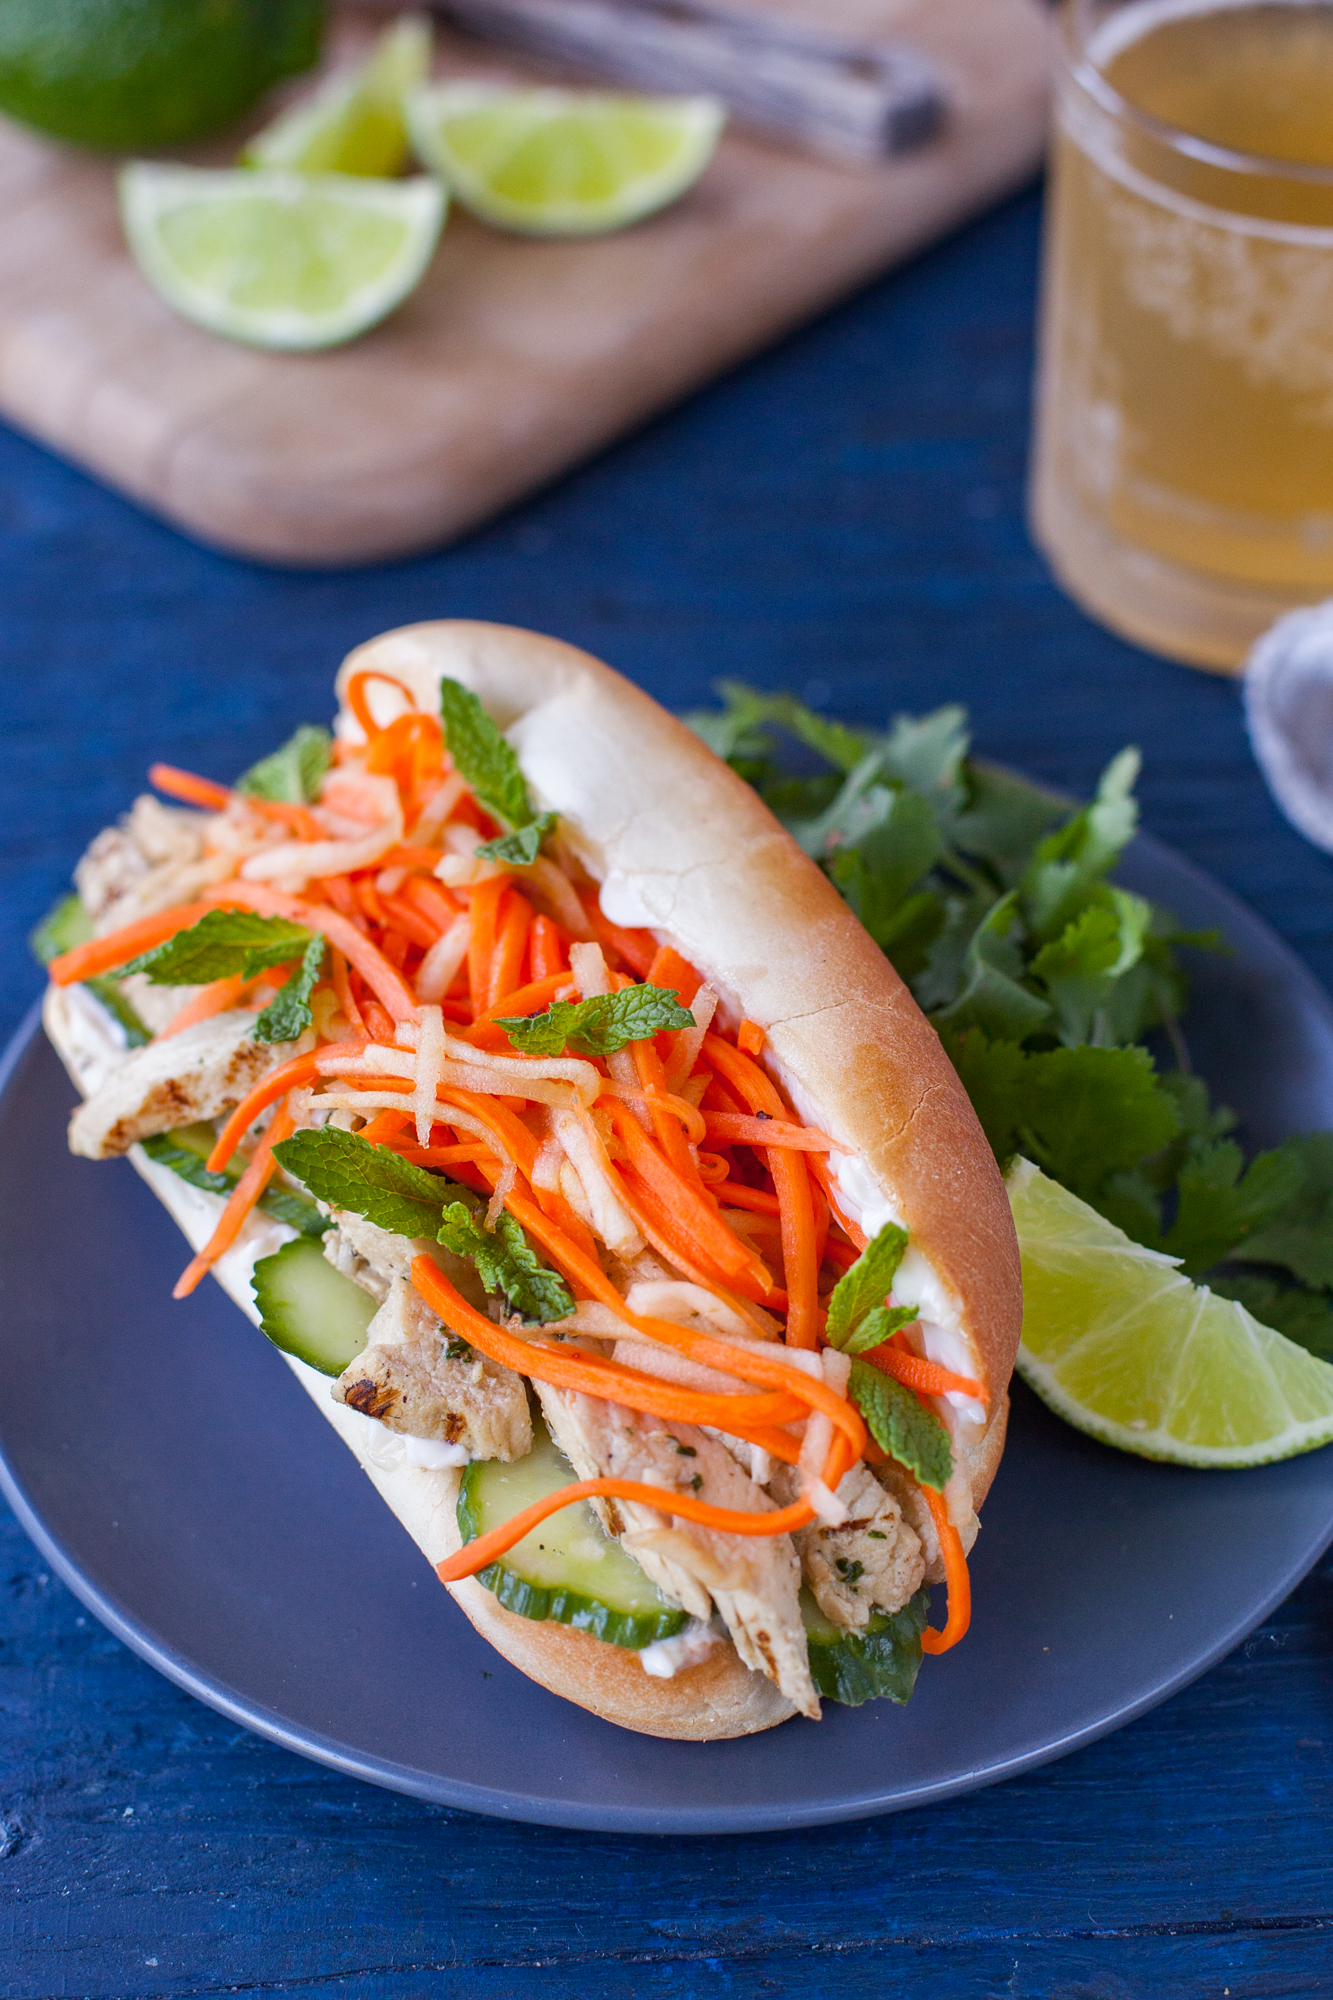 Vietnamese Sandwich Recipe With Grilled Chicken Banh Mi Eating Richly